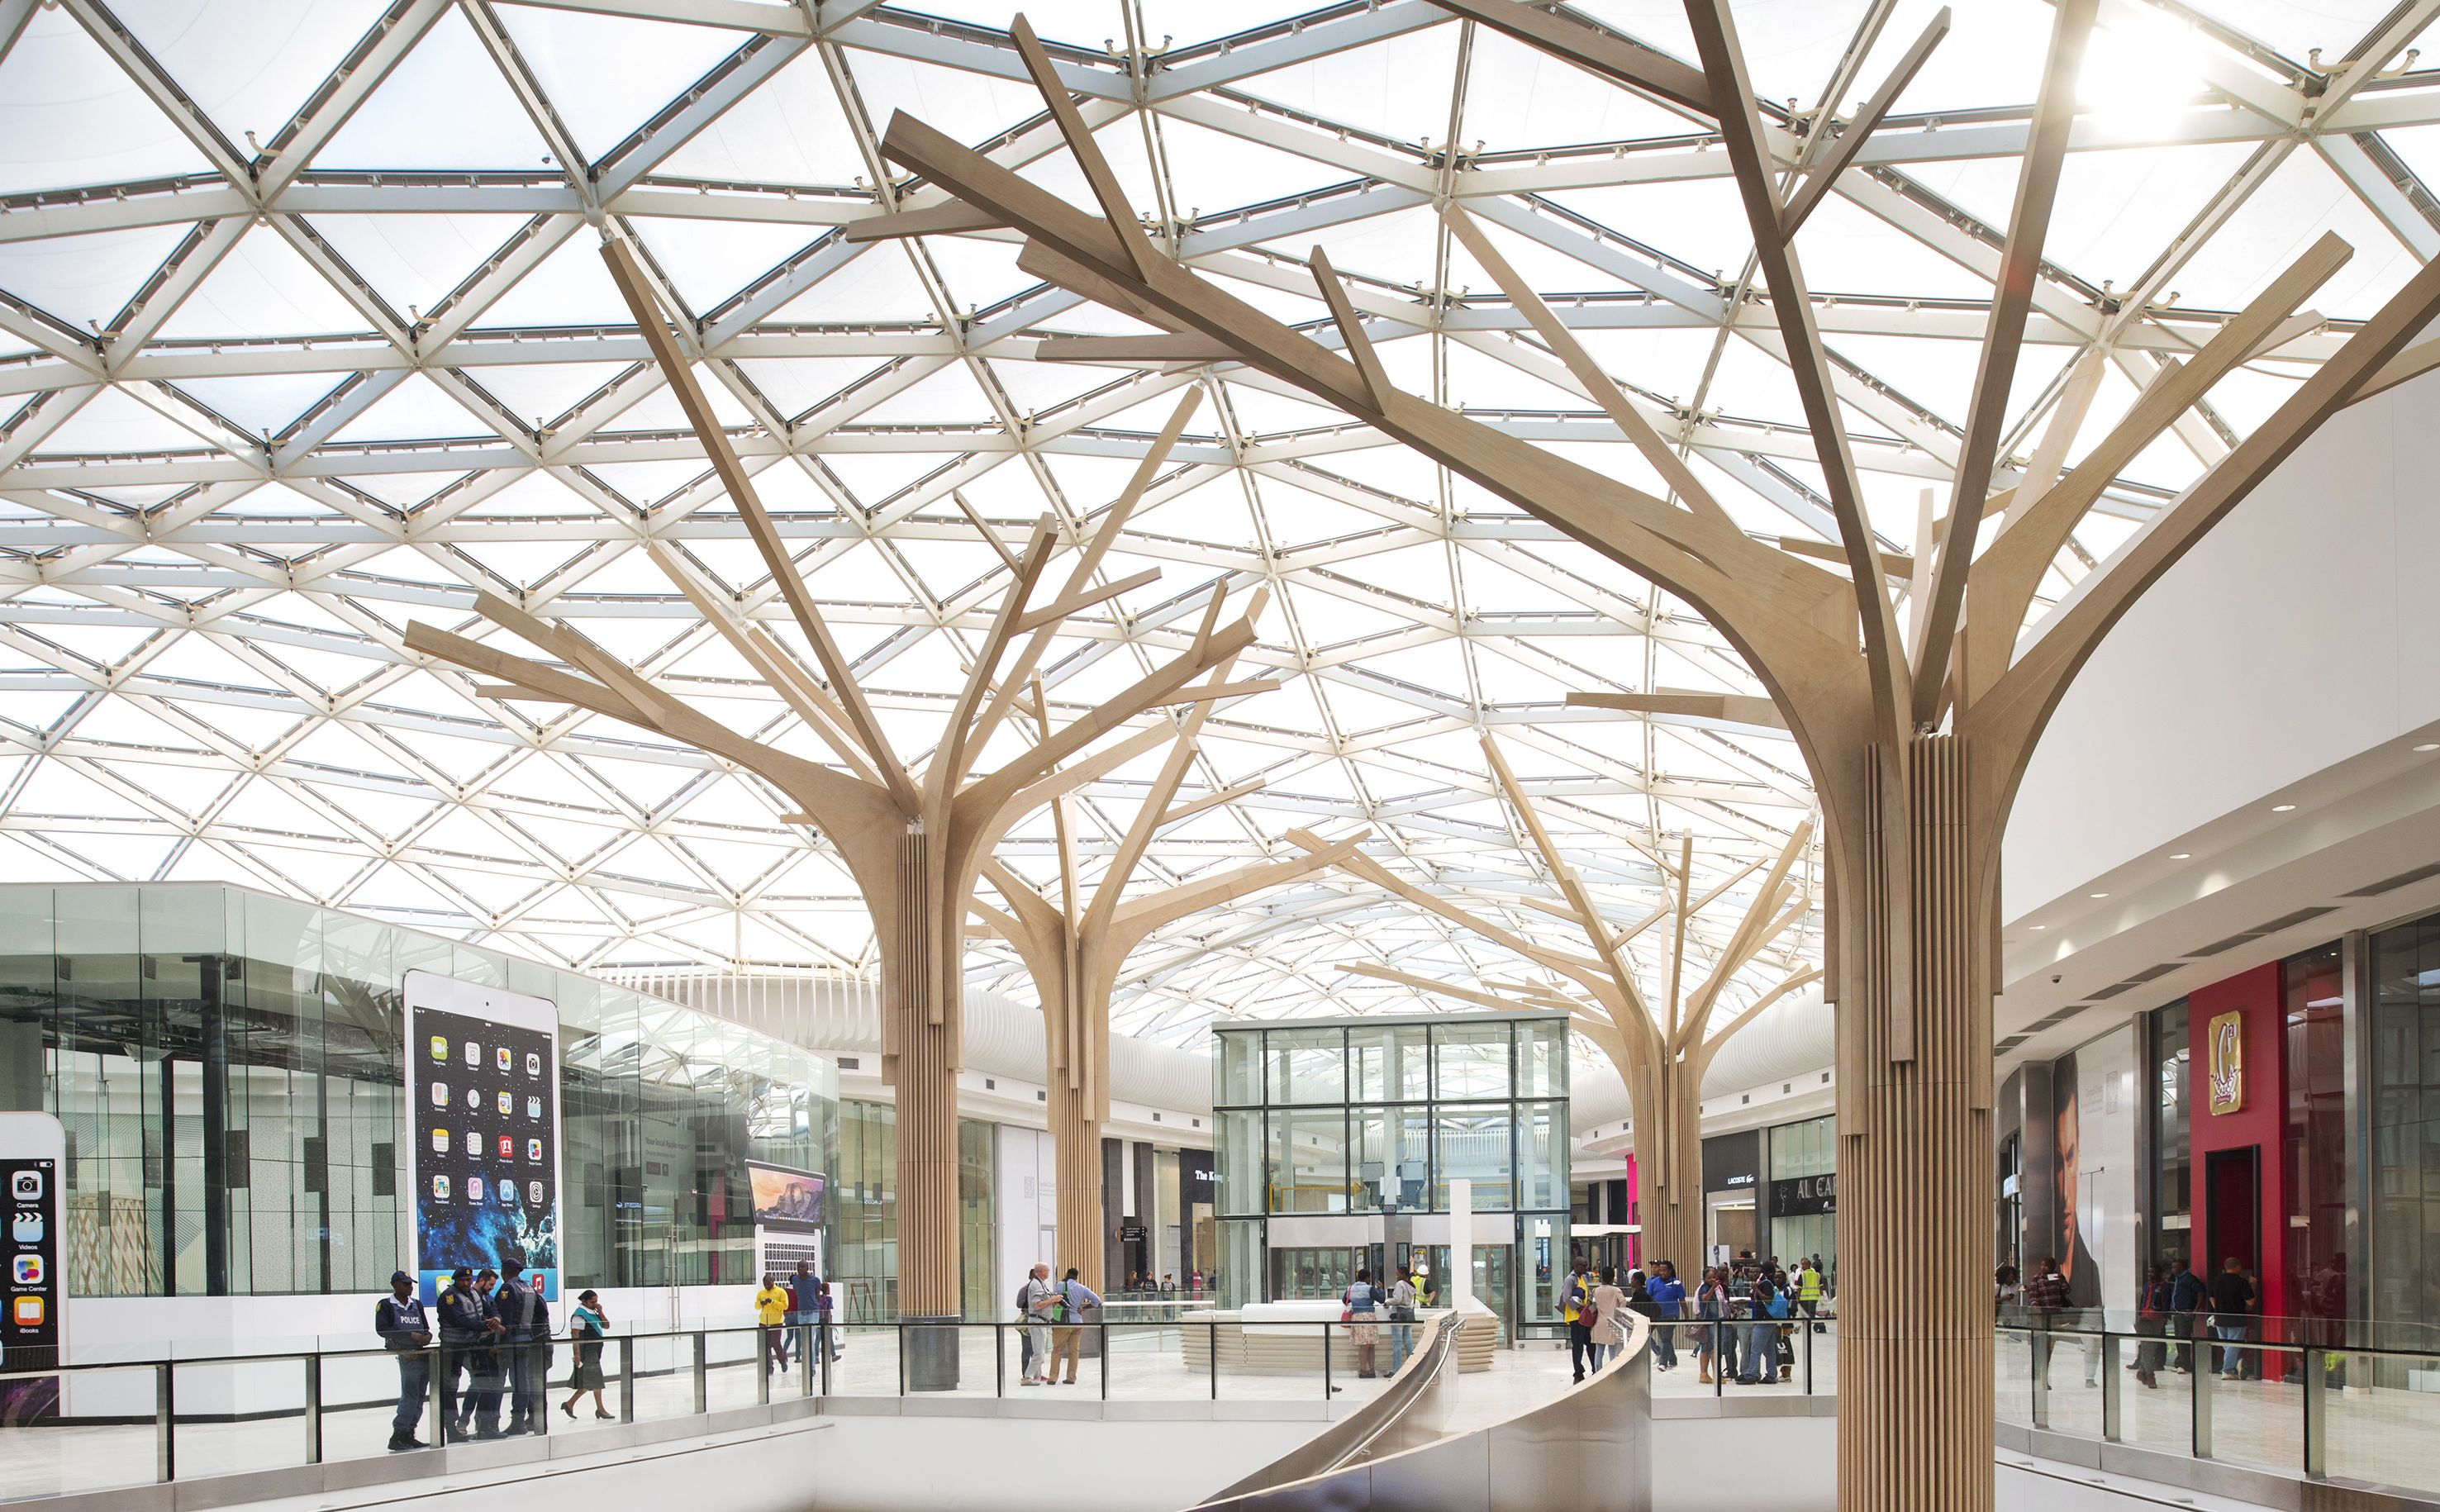 Tree Structure Mall的圖片搜尋結果 Shopping Mall Interior Mall